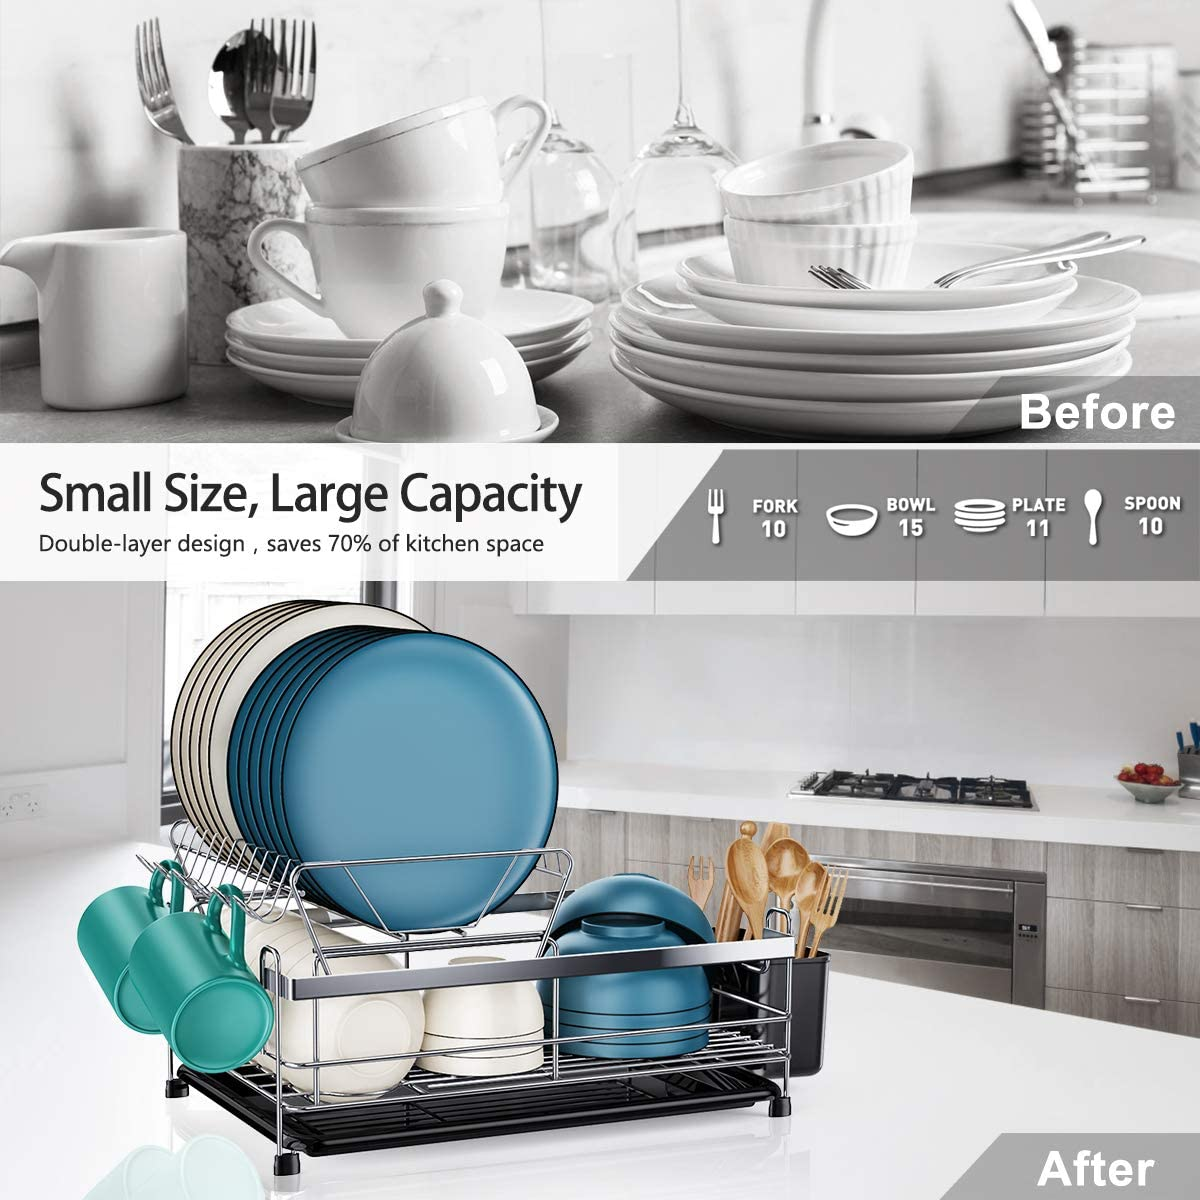 2020 Newest 304 Stainless Steel Dish Drainer For Kitchen Counter Large Capacity Unique U Shaped Design Dish Holder Kitchen Dish Rack And Drainboard Set Homemaxs Dish Drying Rack Storage Organization Kitchen